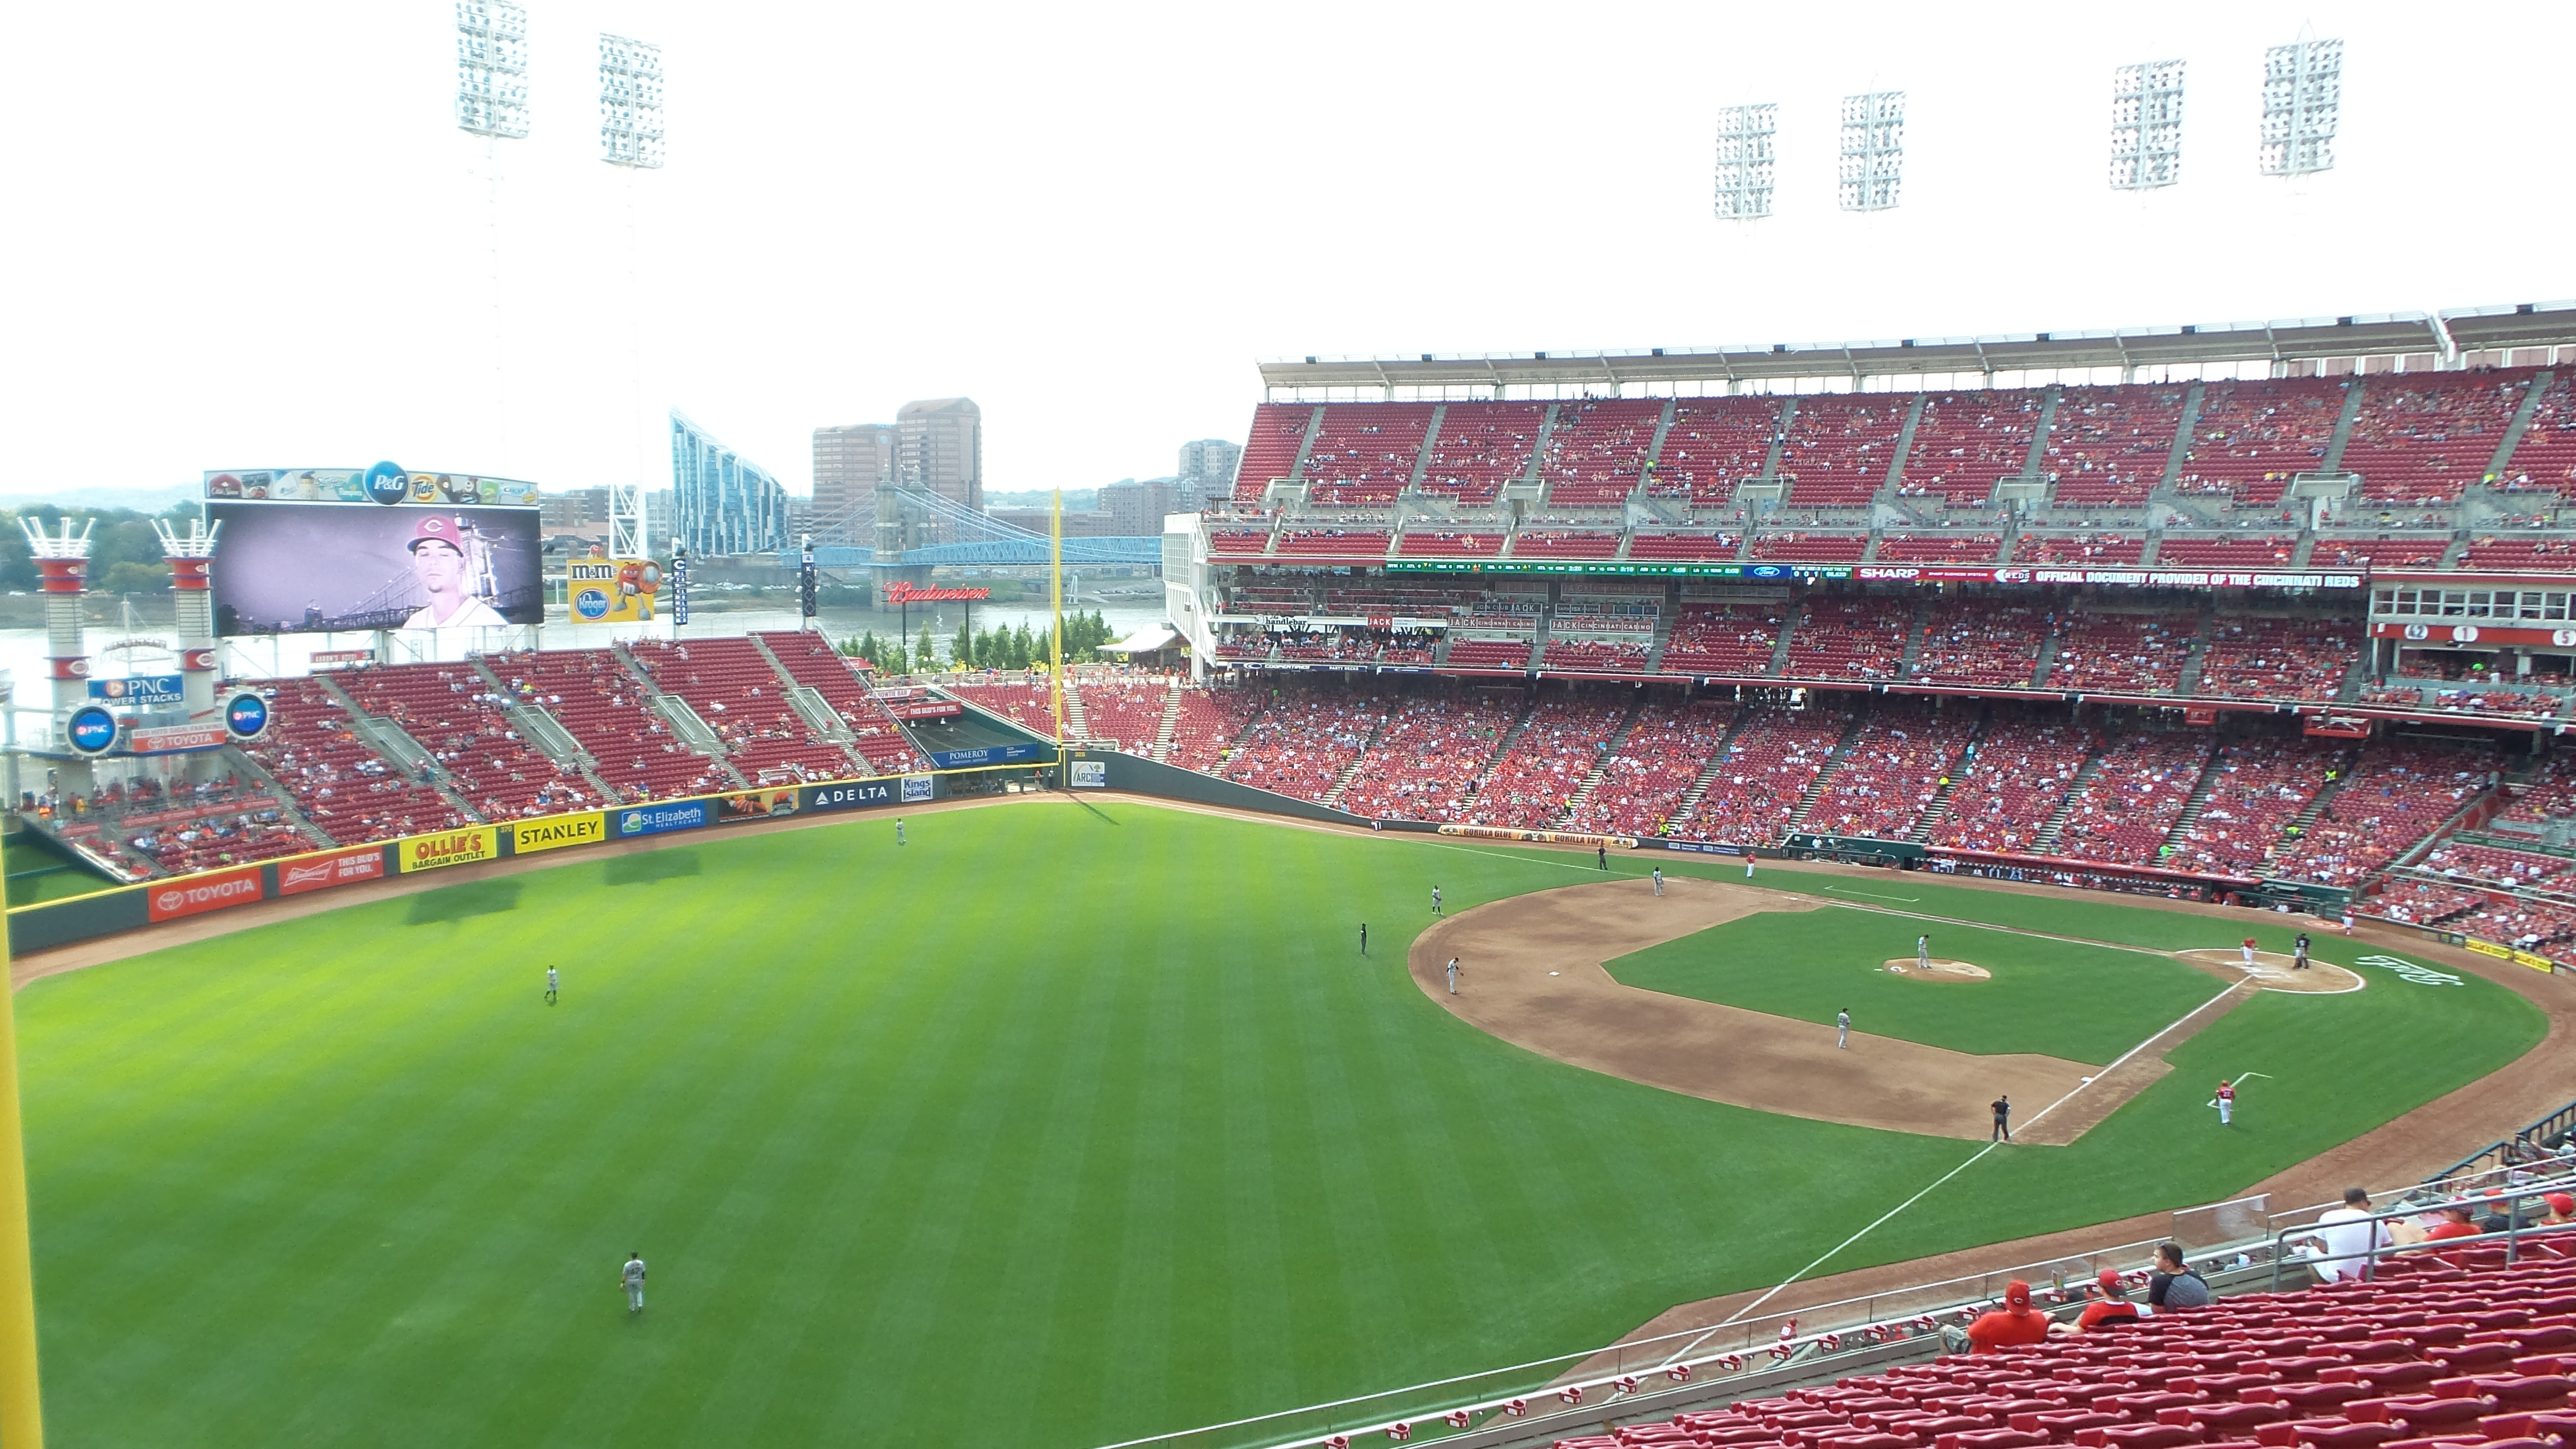 The Reds were really racking up the Ks today…